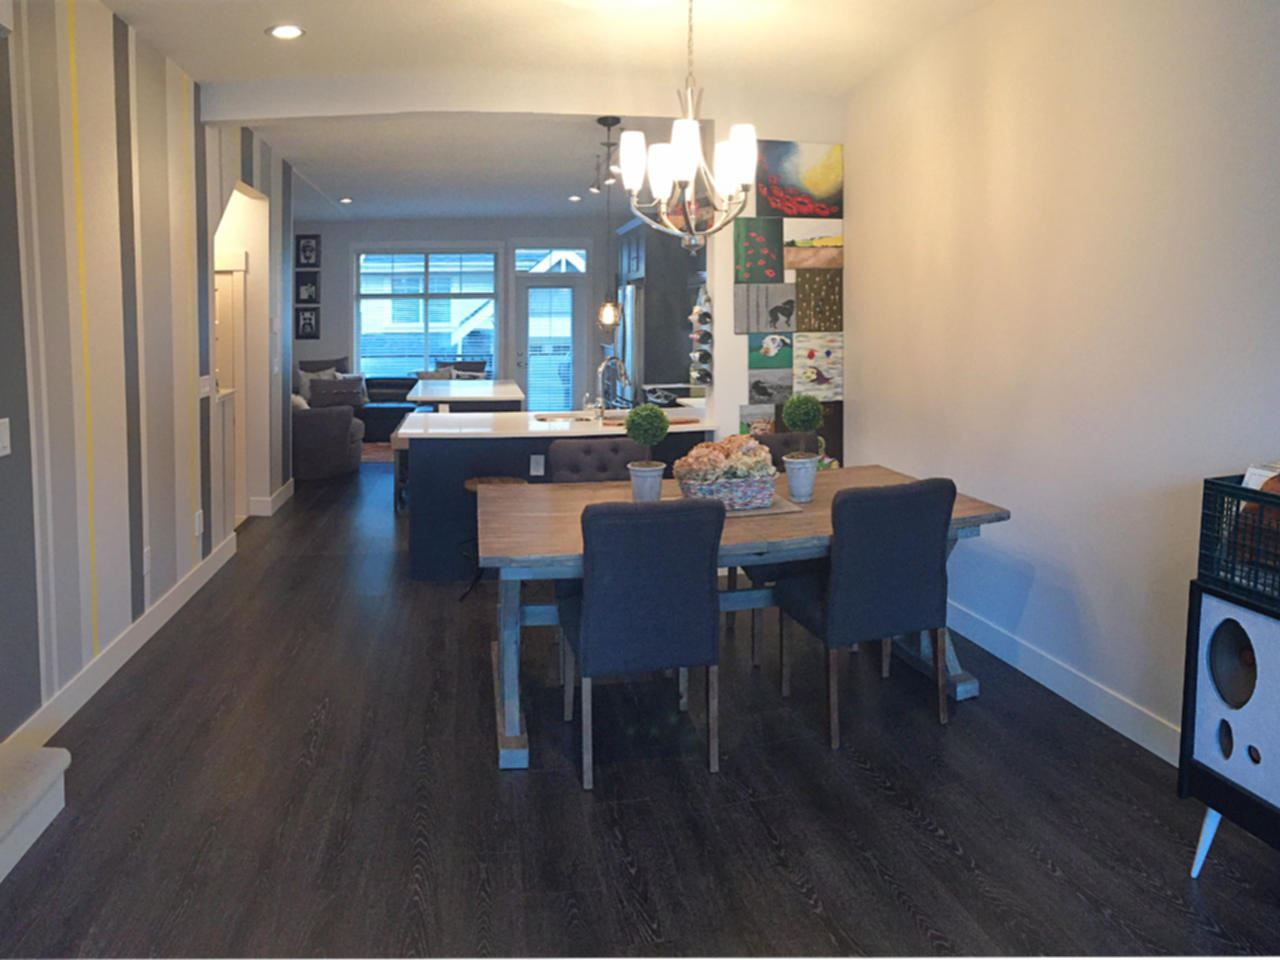 """Photo 10: Photos: 36 19525 73 Avenue in Surrey: Clayton Townhouse for sale in """"Uptown Clayton"""" (Cloverdale)  : MLS®# R2069814"""